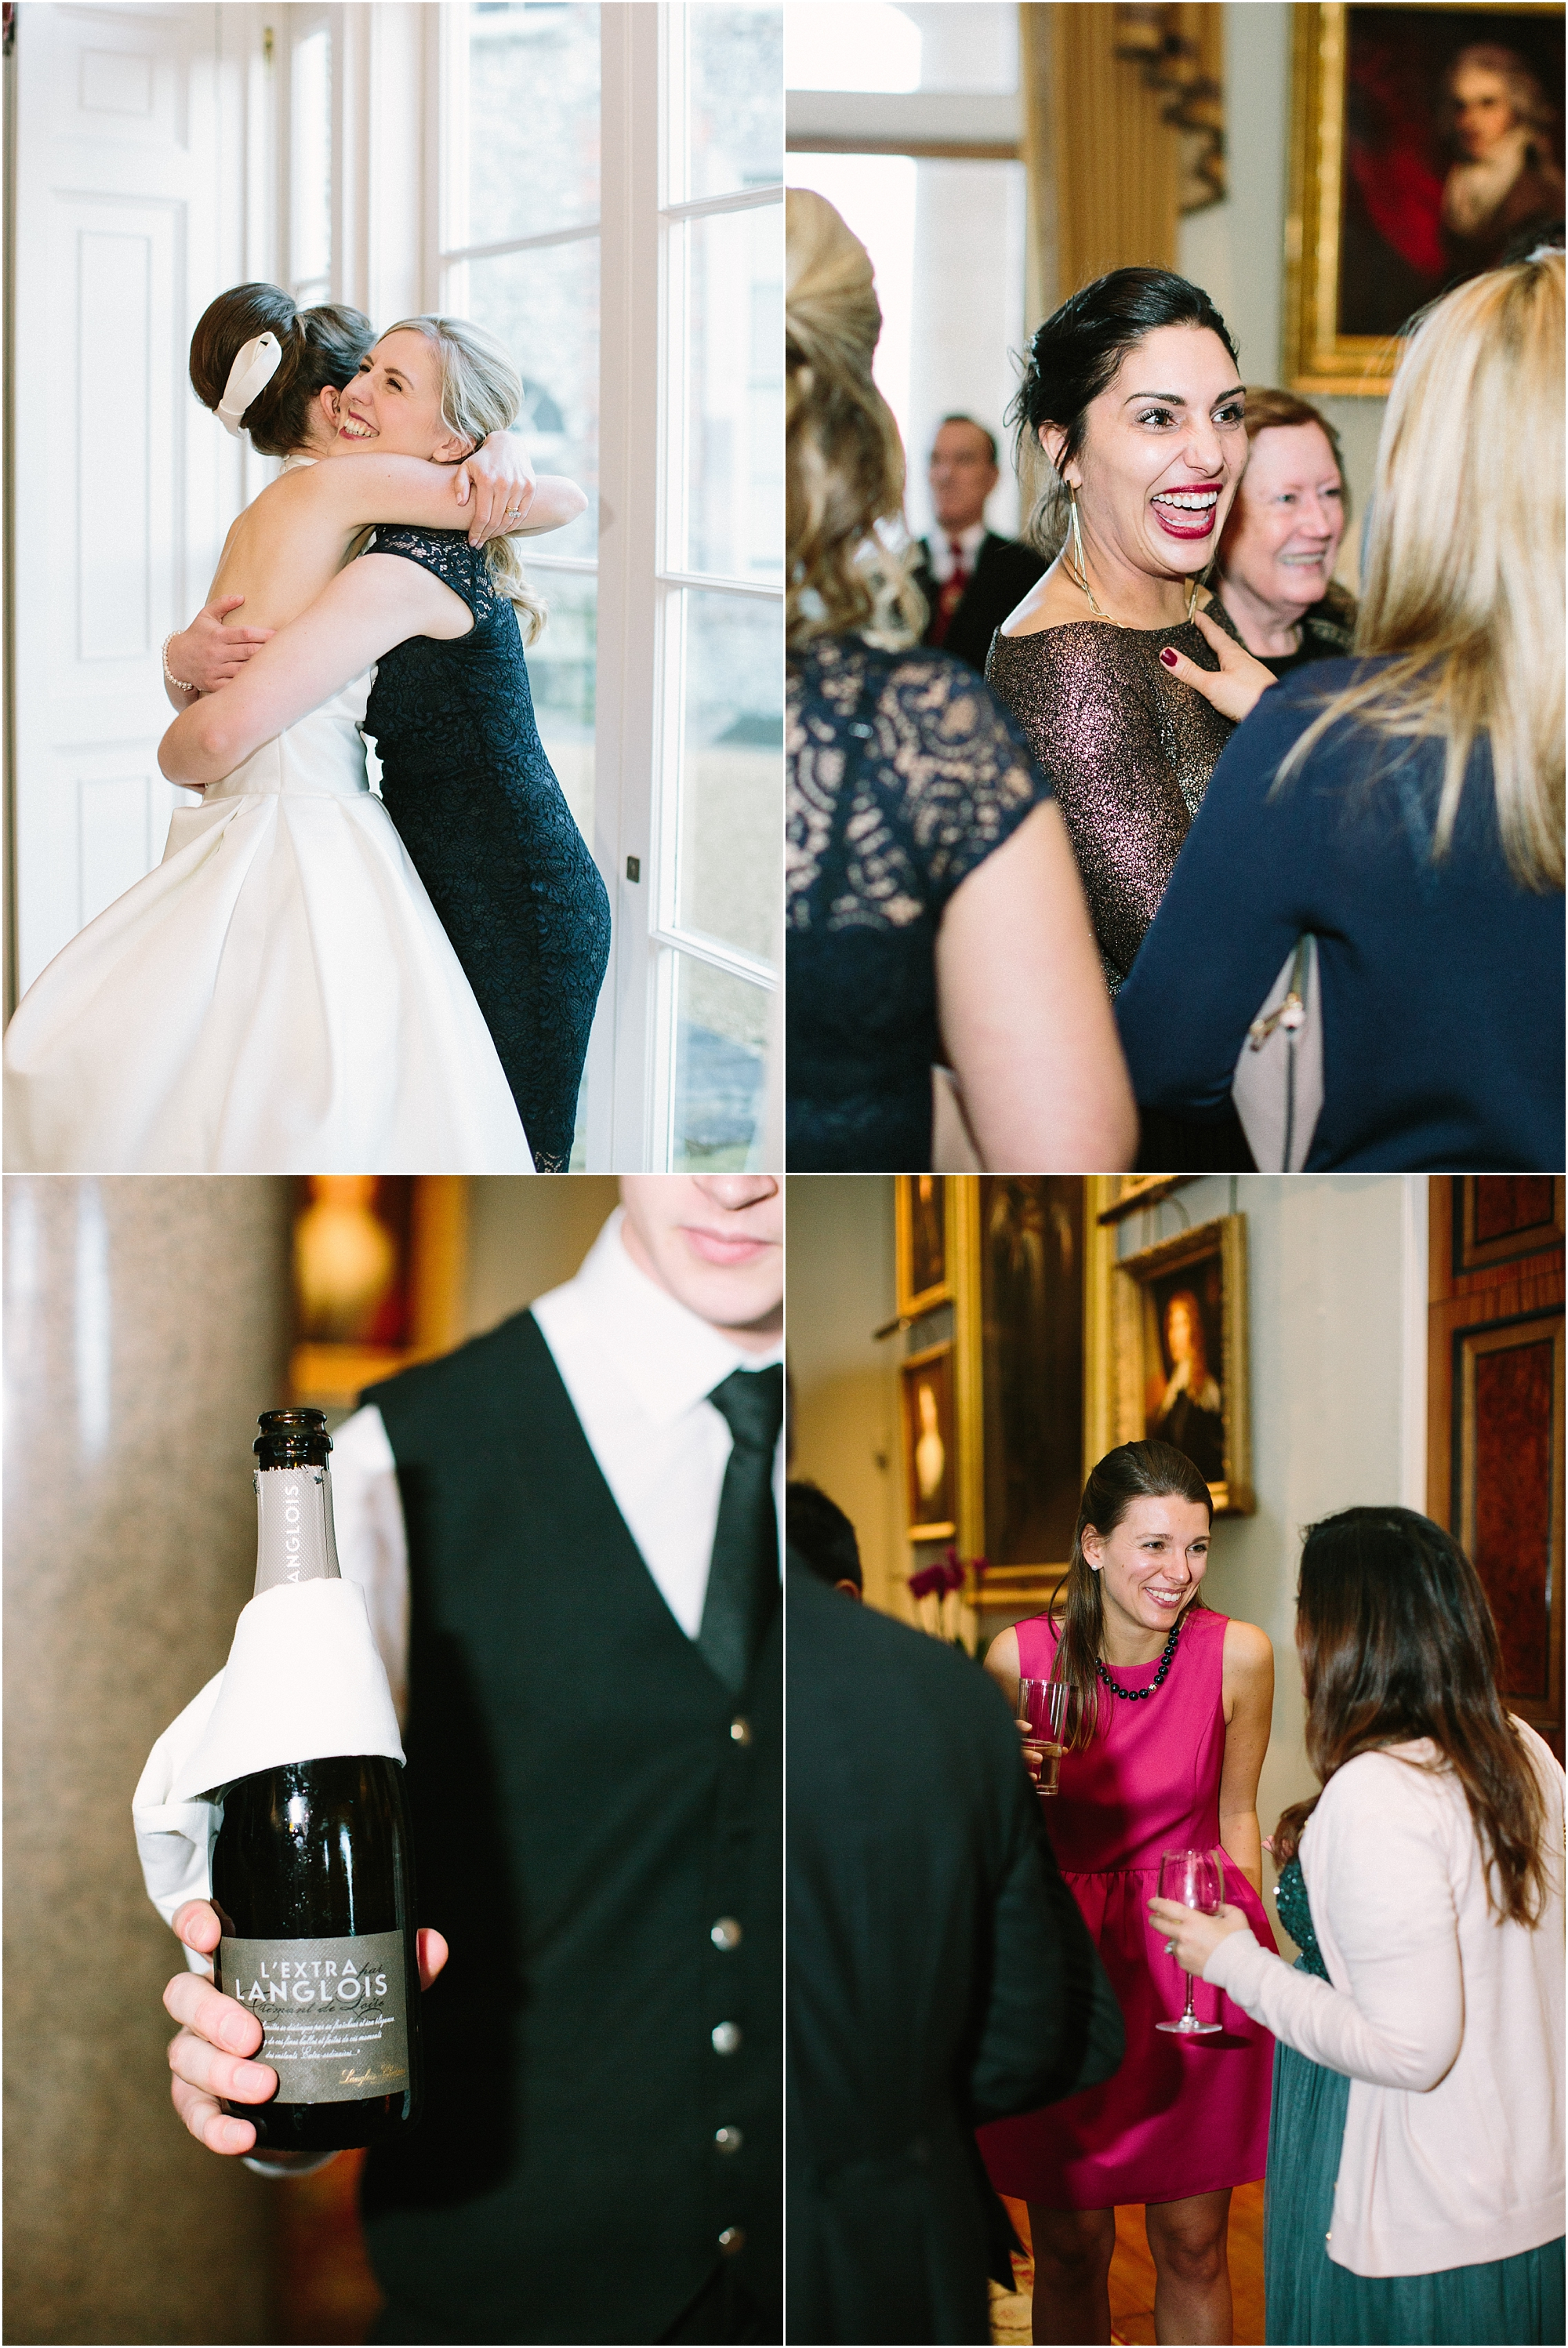 Wedding reception at Goodwood House